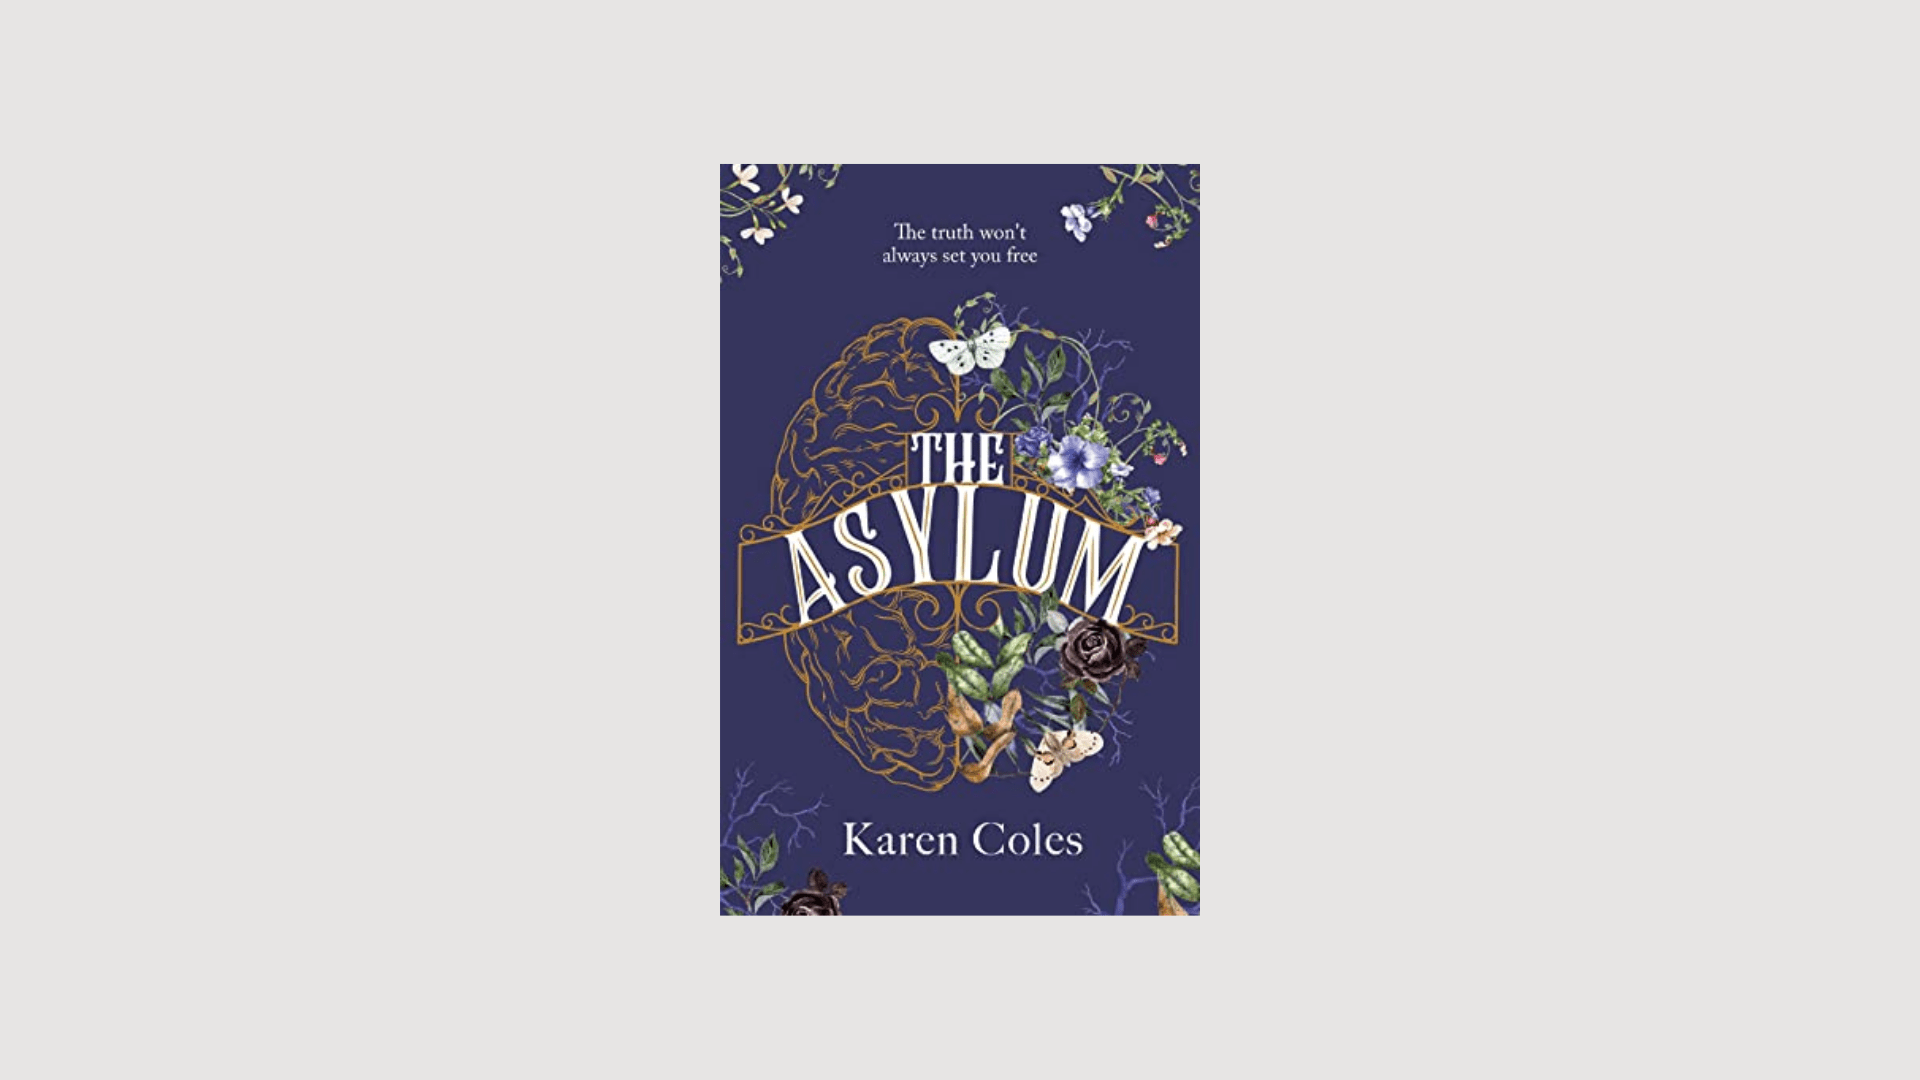 the cover of The Asylum by Karen Cole on a light grey background